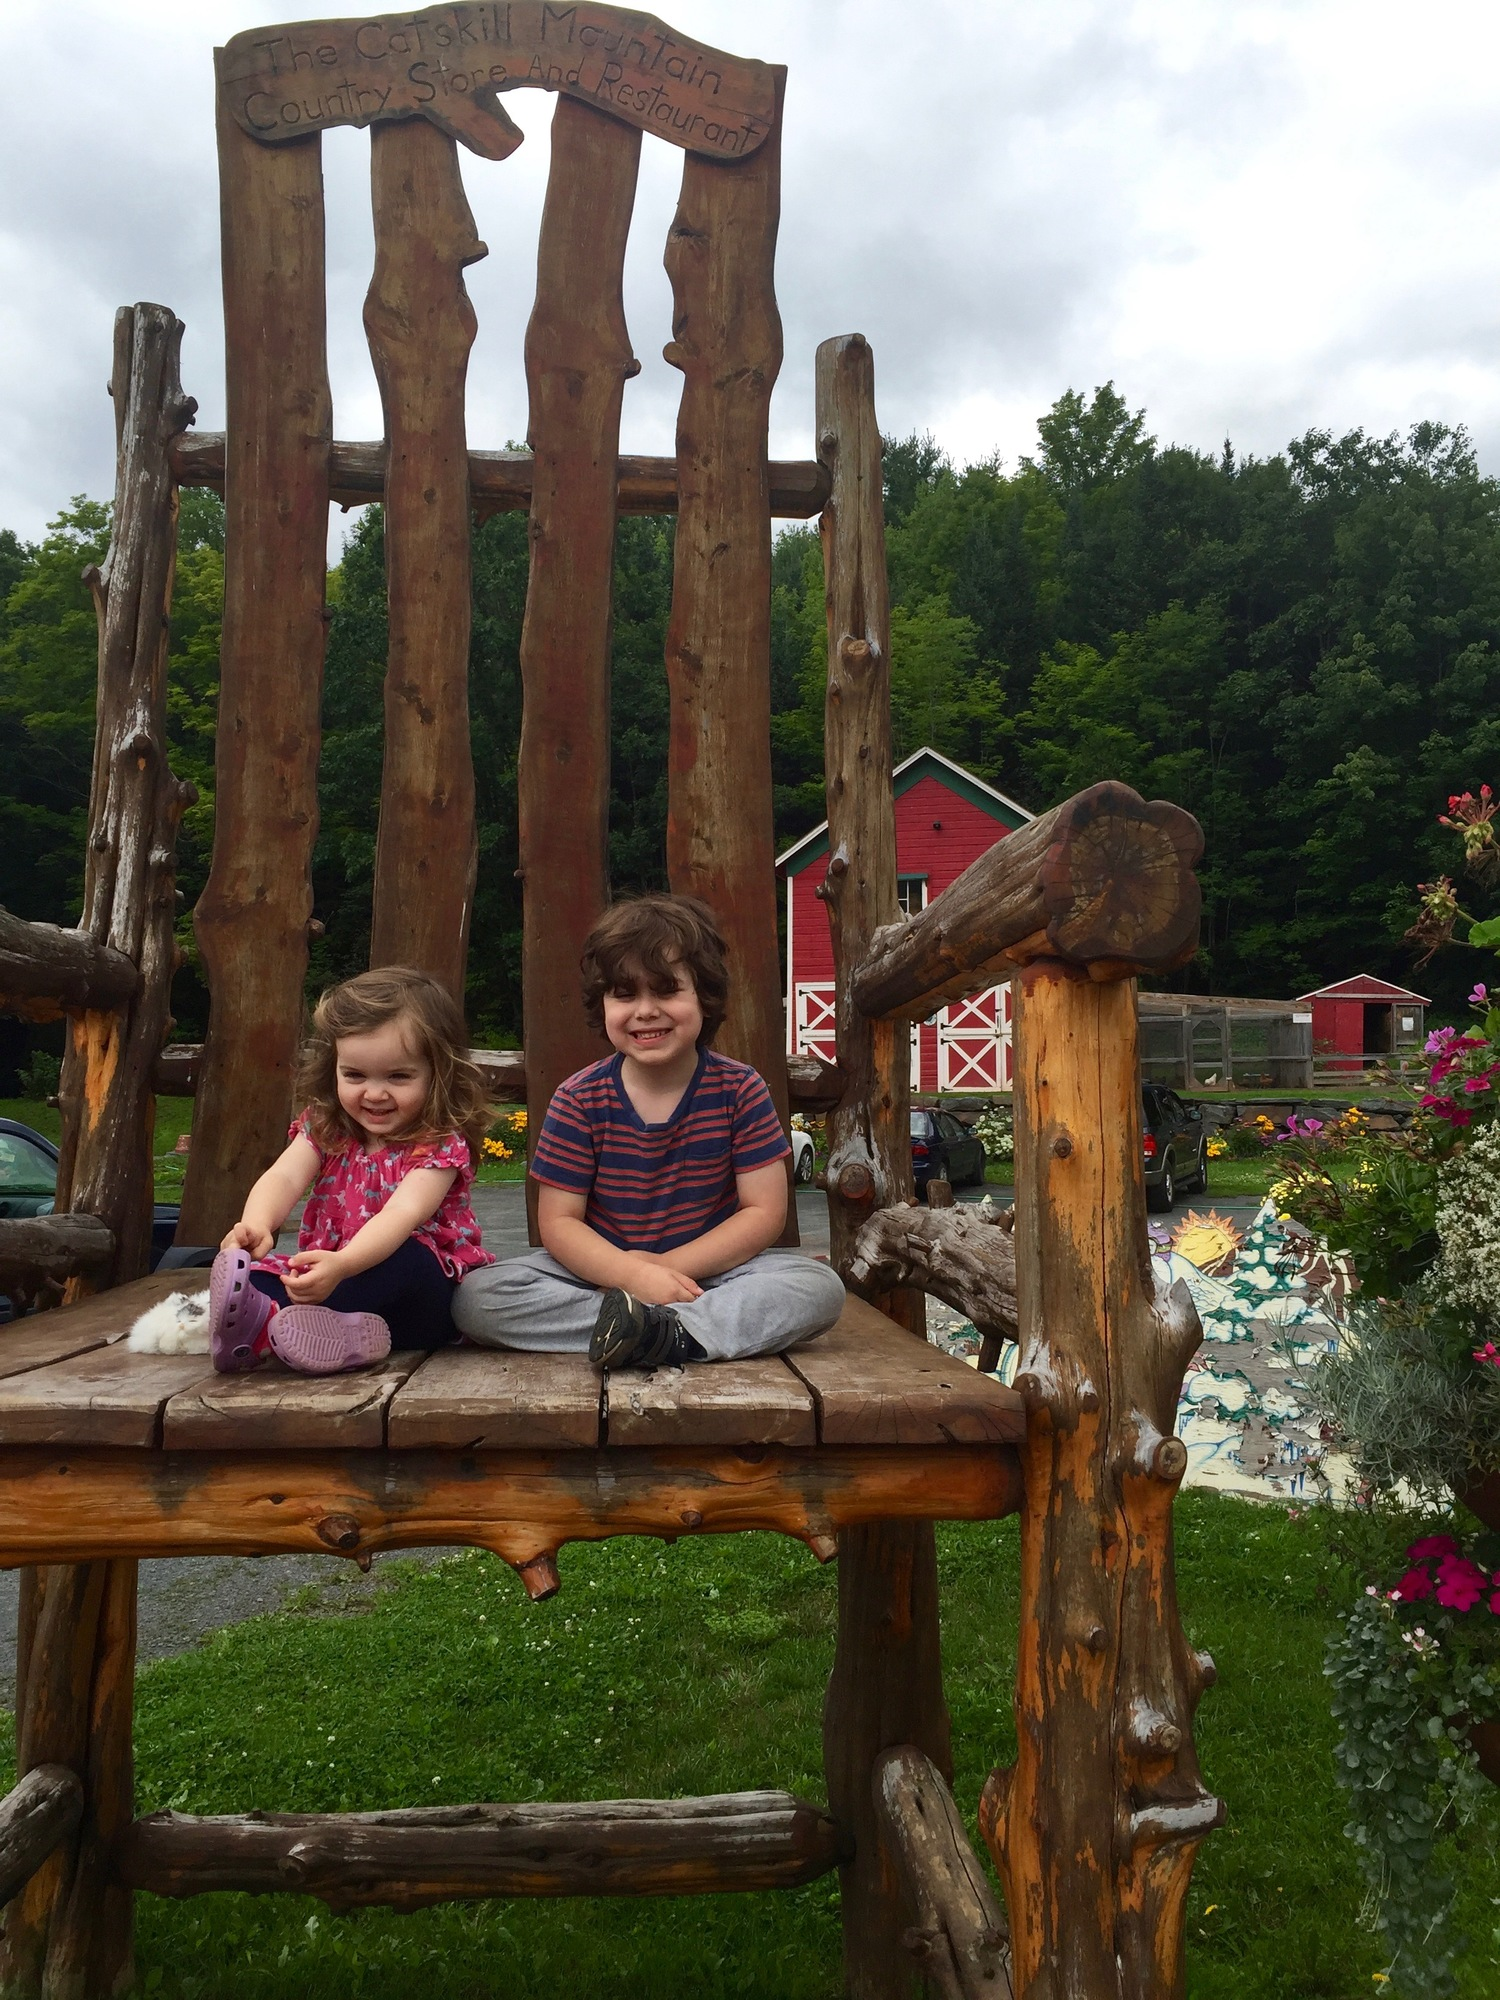 Catskill Mountain Country Store: A Child's Paradise